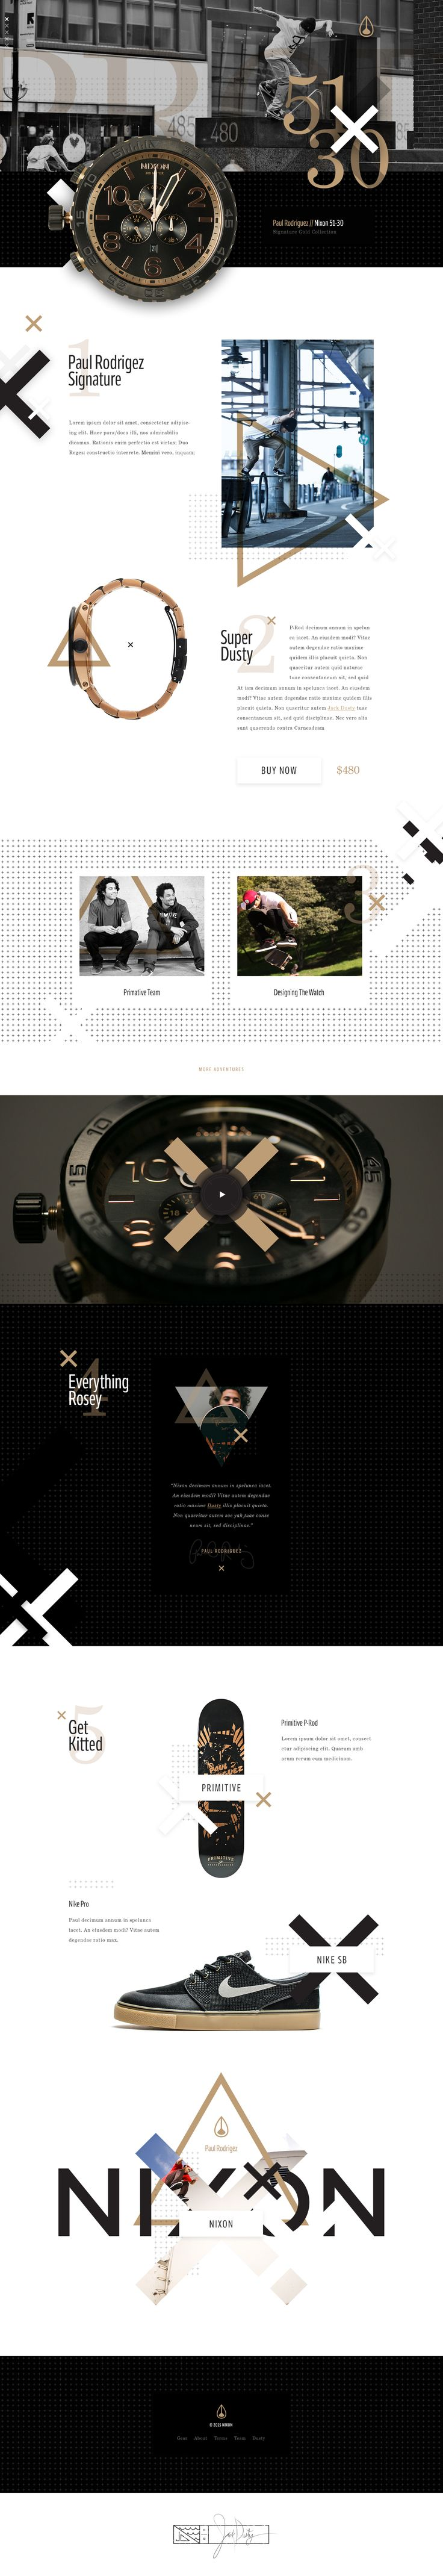 Nixon Paul Rodriguez - #11 Ui design concept and website home for the watch series, by Ben Johnson (Elegant Seagulls) on Dribbble. #UI #Design